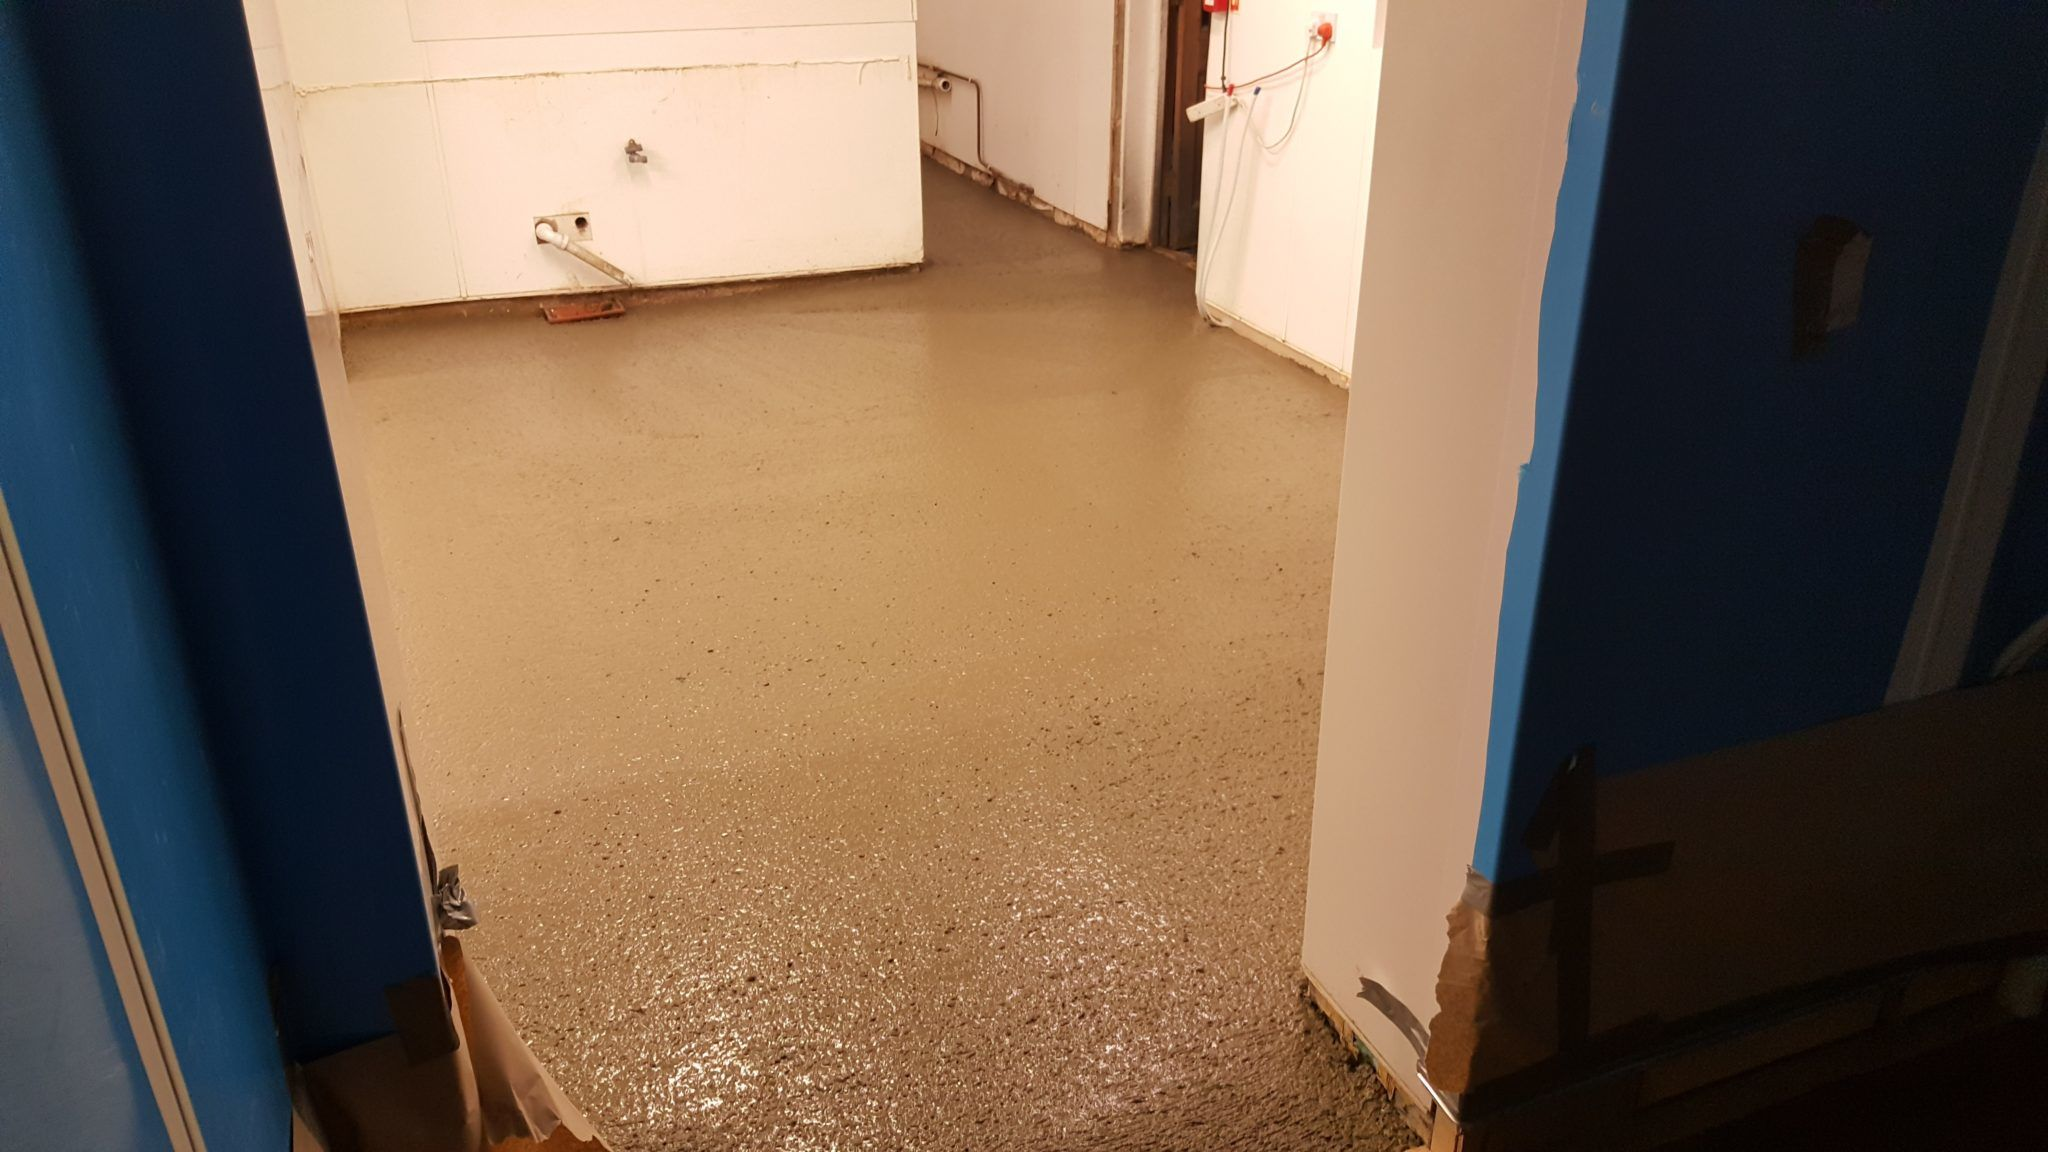 resin flooring kitchen flooring norfolk flooring for kitchen Resin Flooring Kitchen Flooring Norfolk